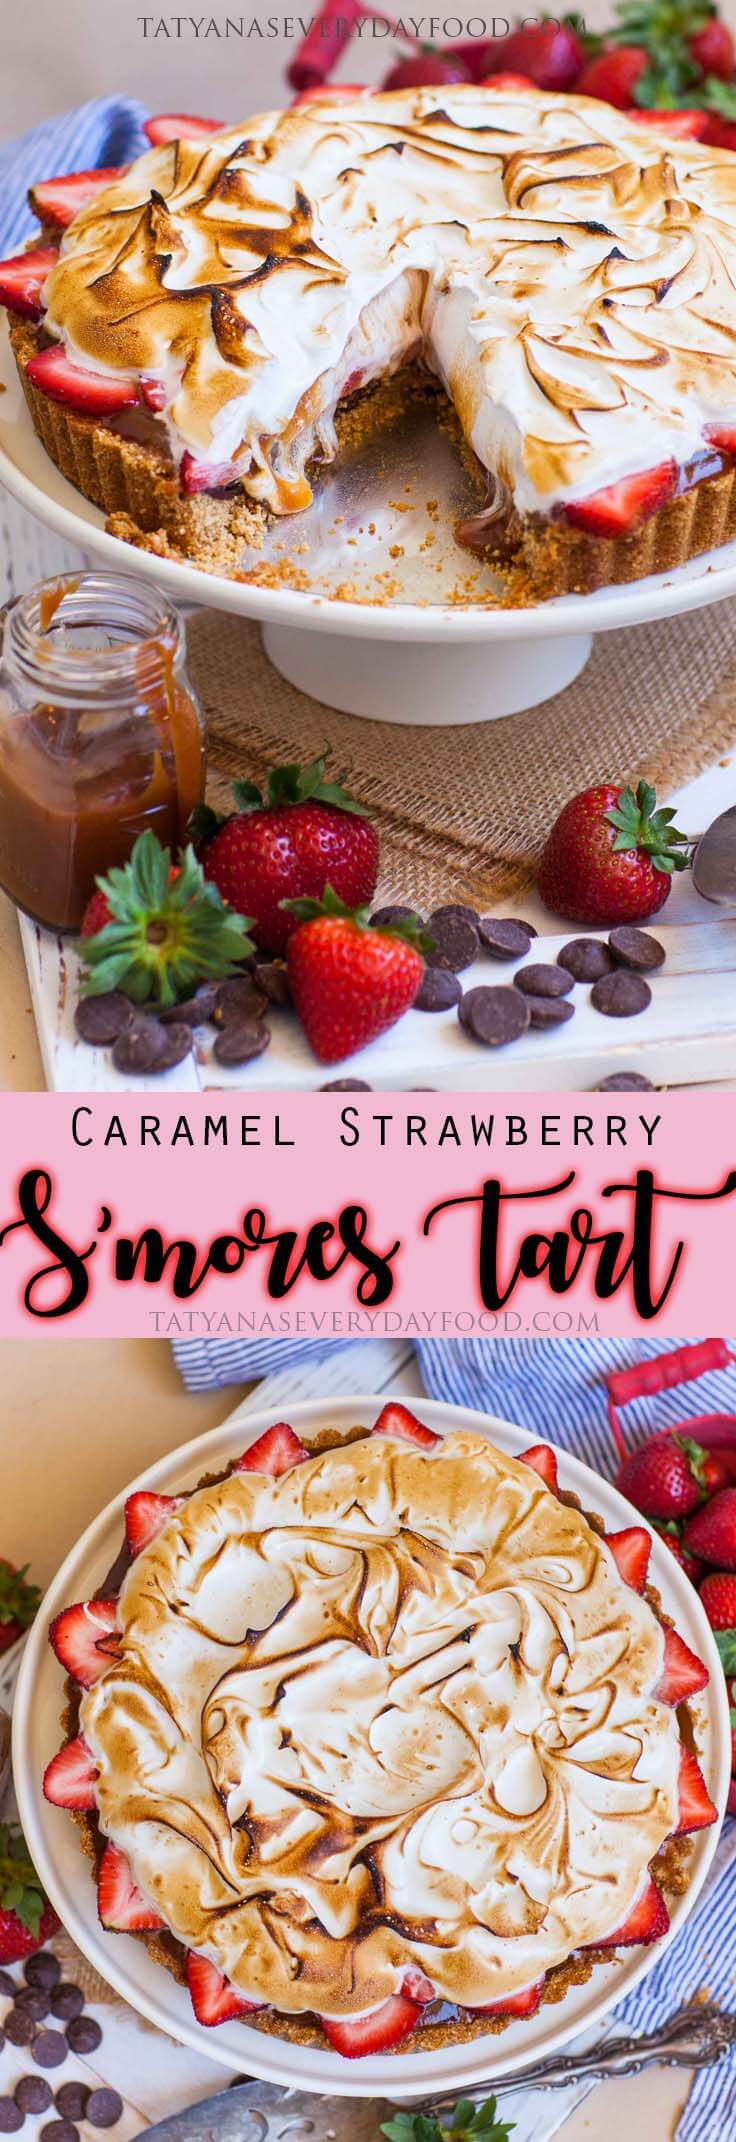 Caramel Strawberry S'mores Tart Recipe with video